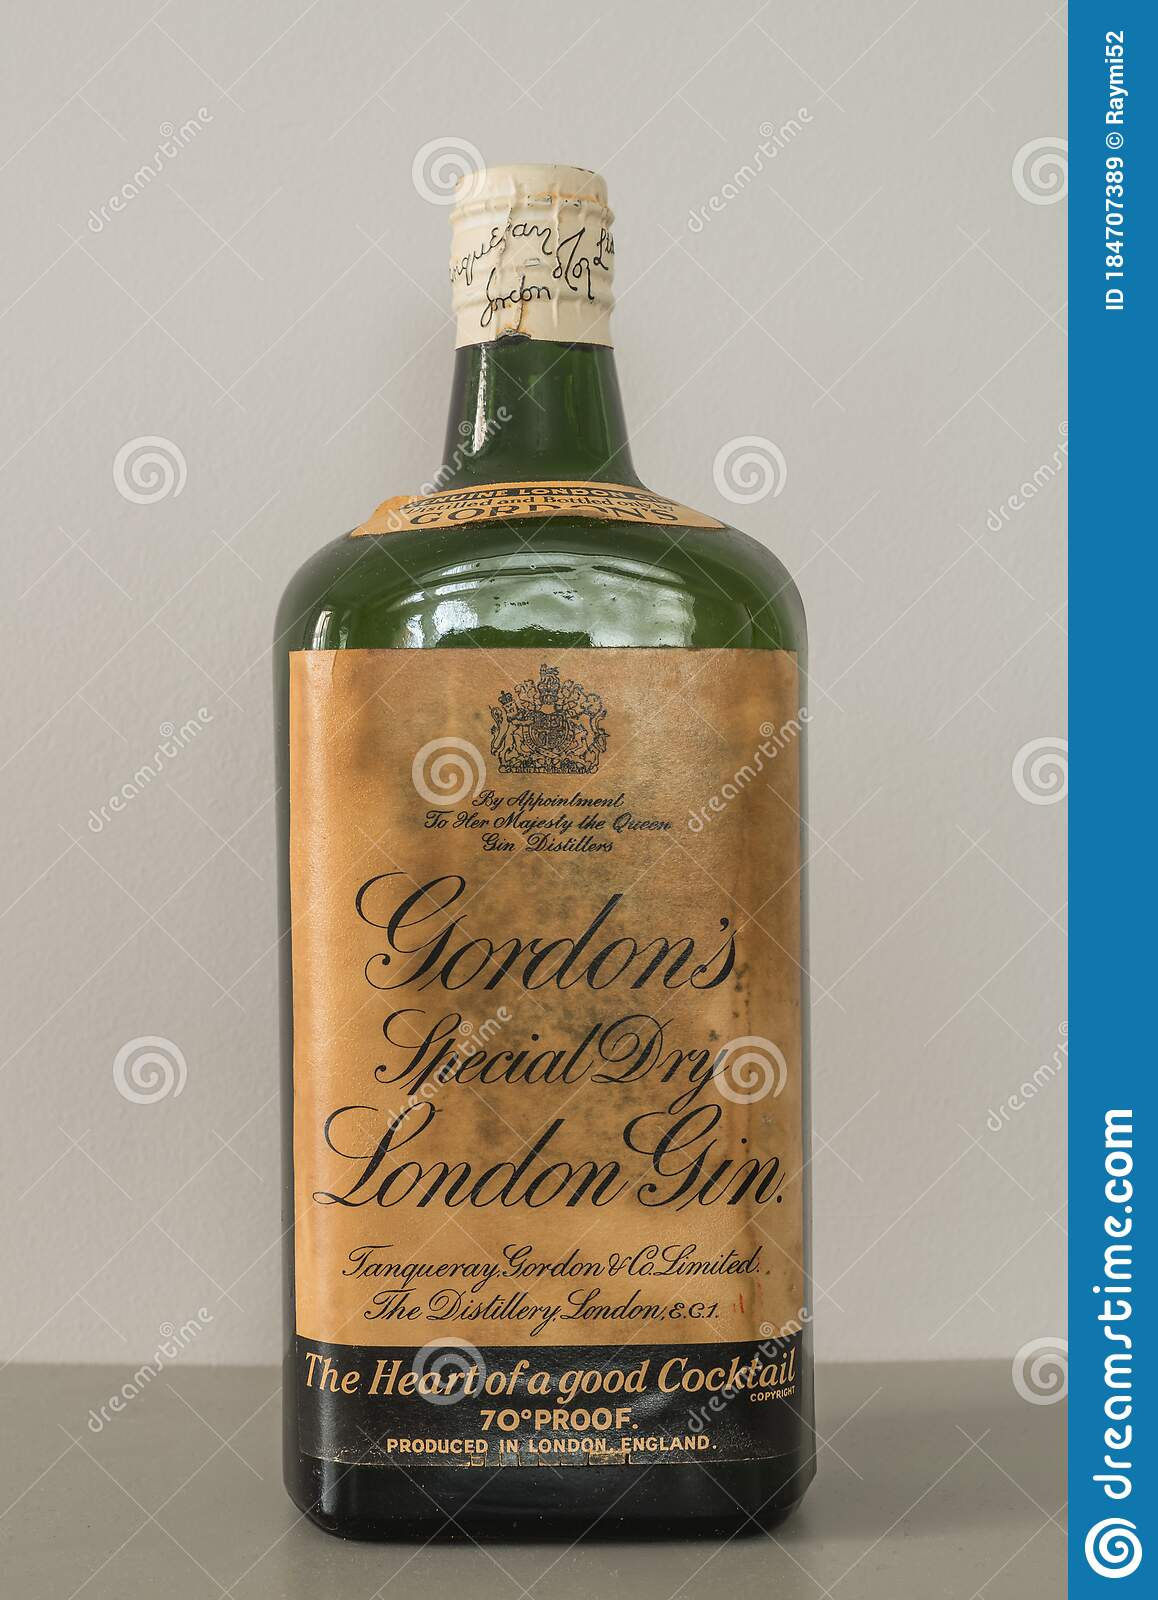 129 Gin Gordons Photos Free Royalty Free Stock Photos From Dreamstime